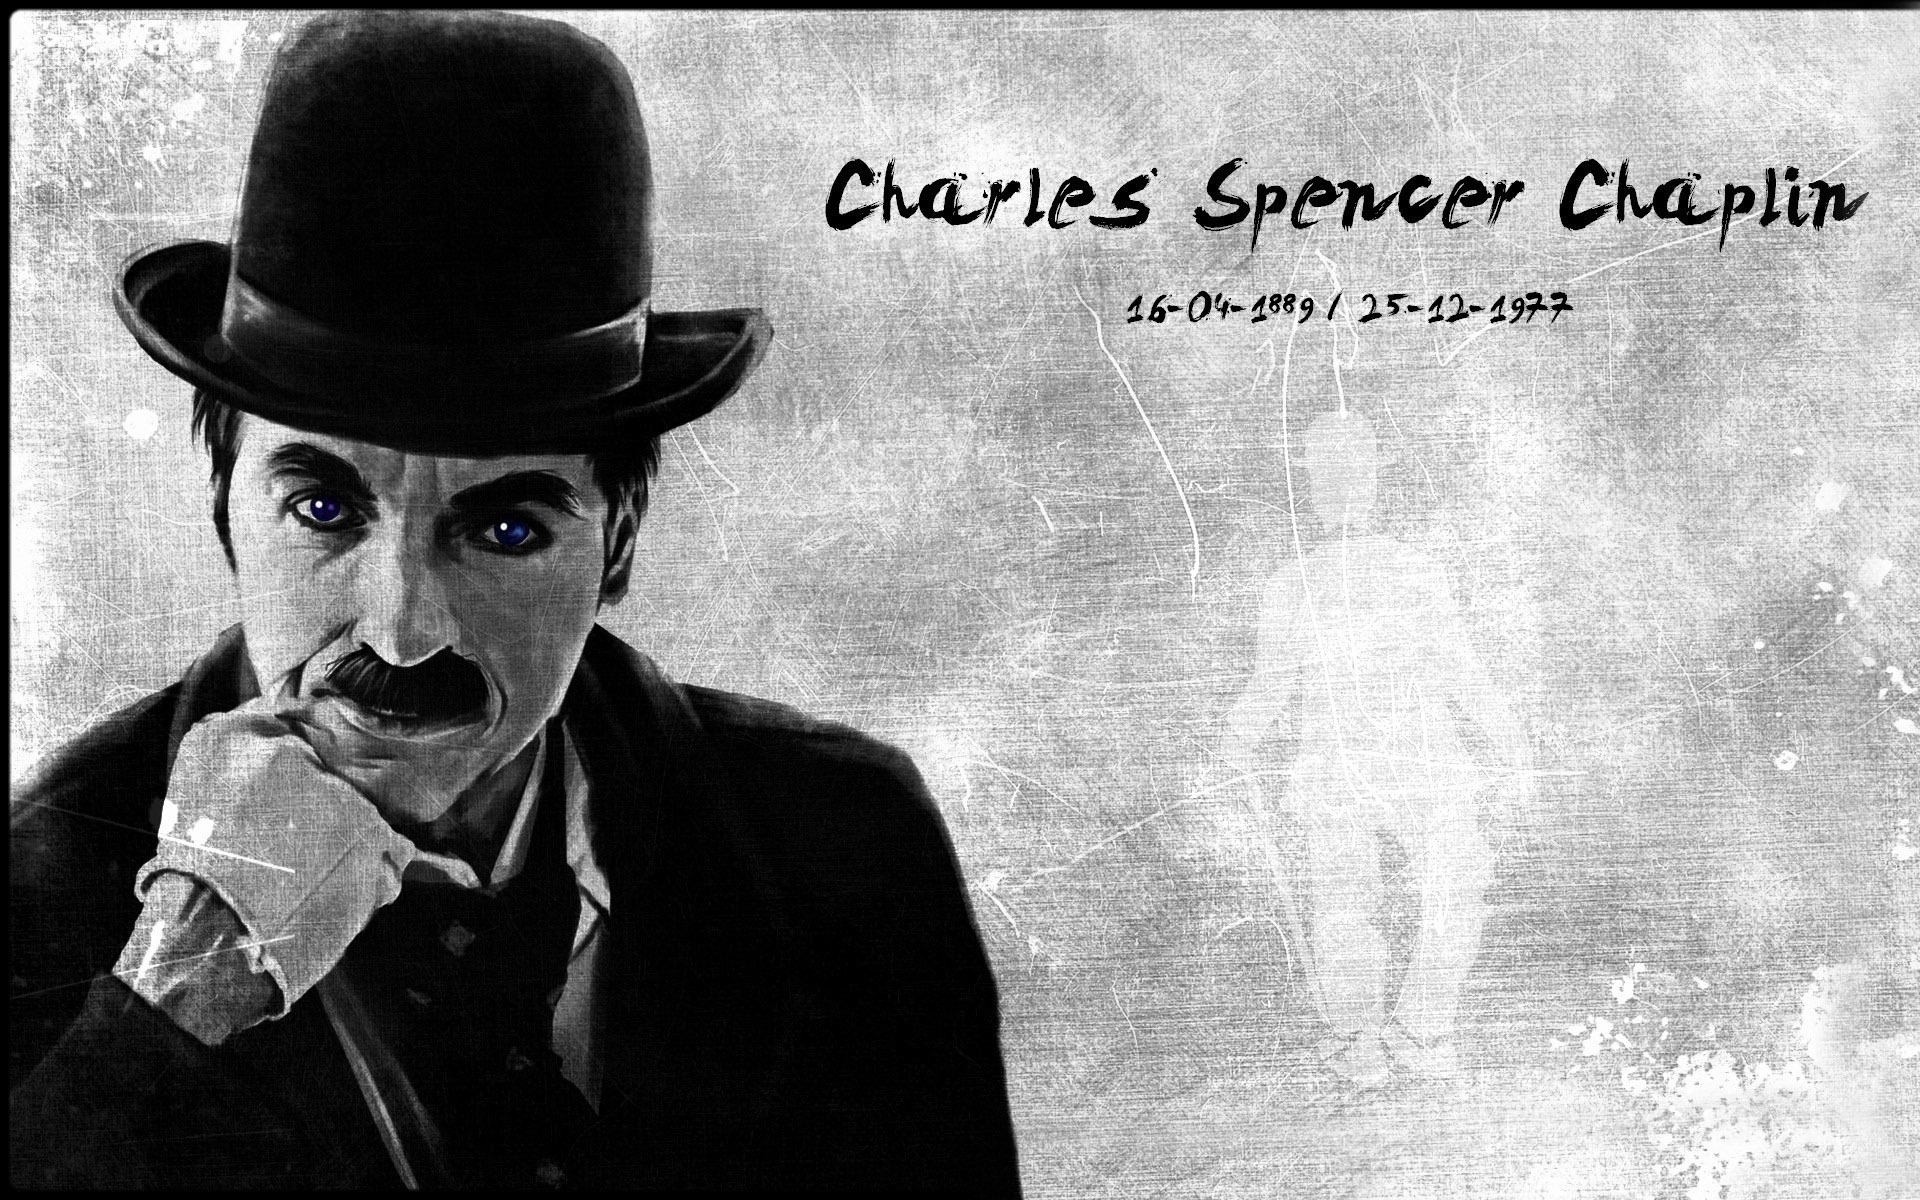 Charlie Chaplin Quotes Wallpaper QuotesGram 1920x1200